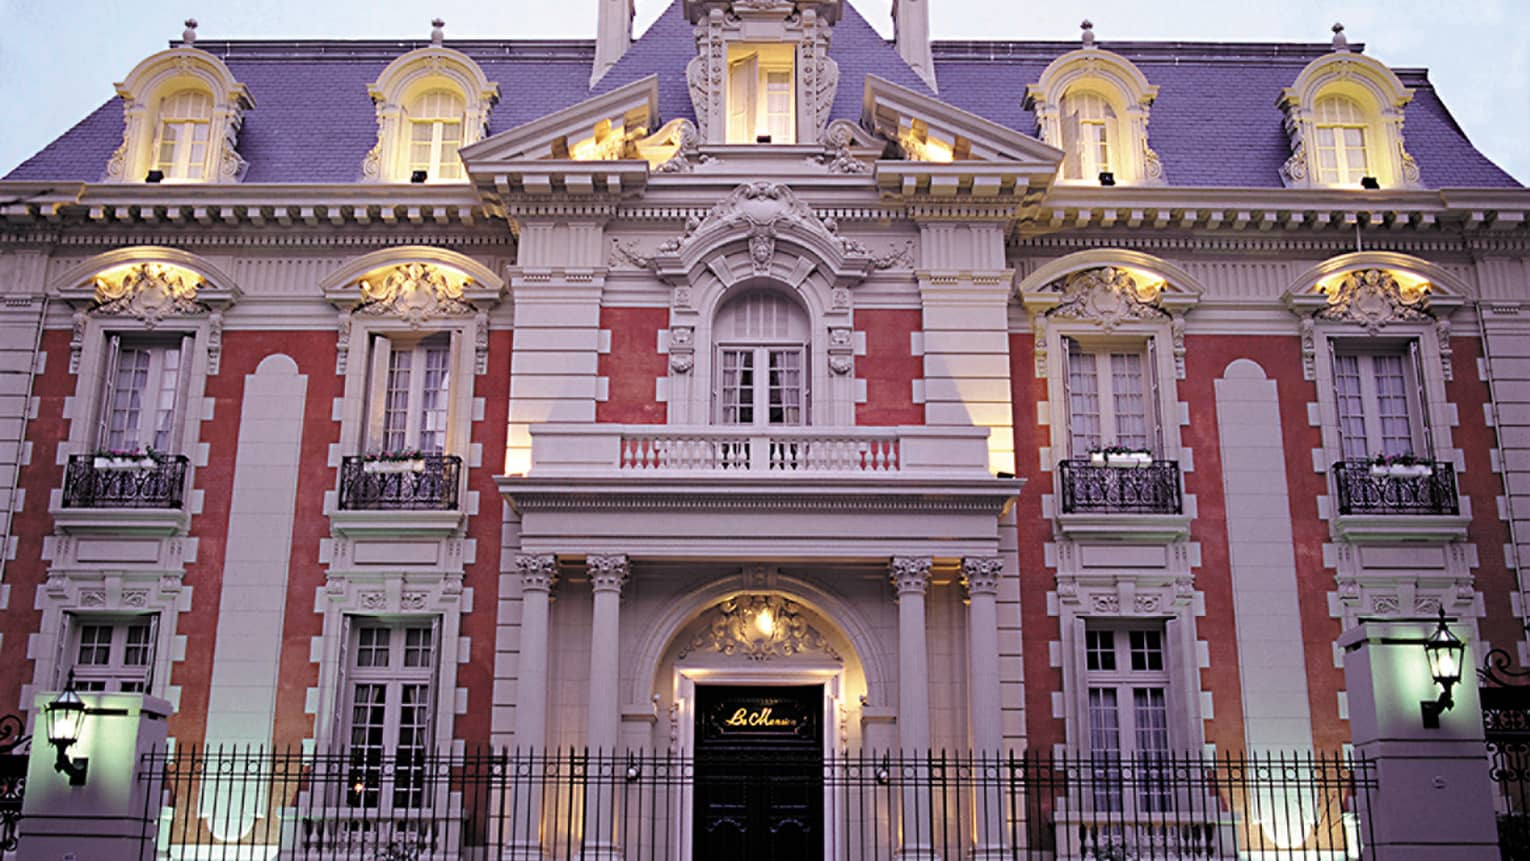 Four Seasons Buenos Aires hotel La Mansión historic exterior with lights at dusk, black fence in front